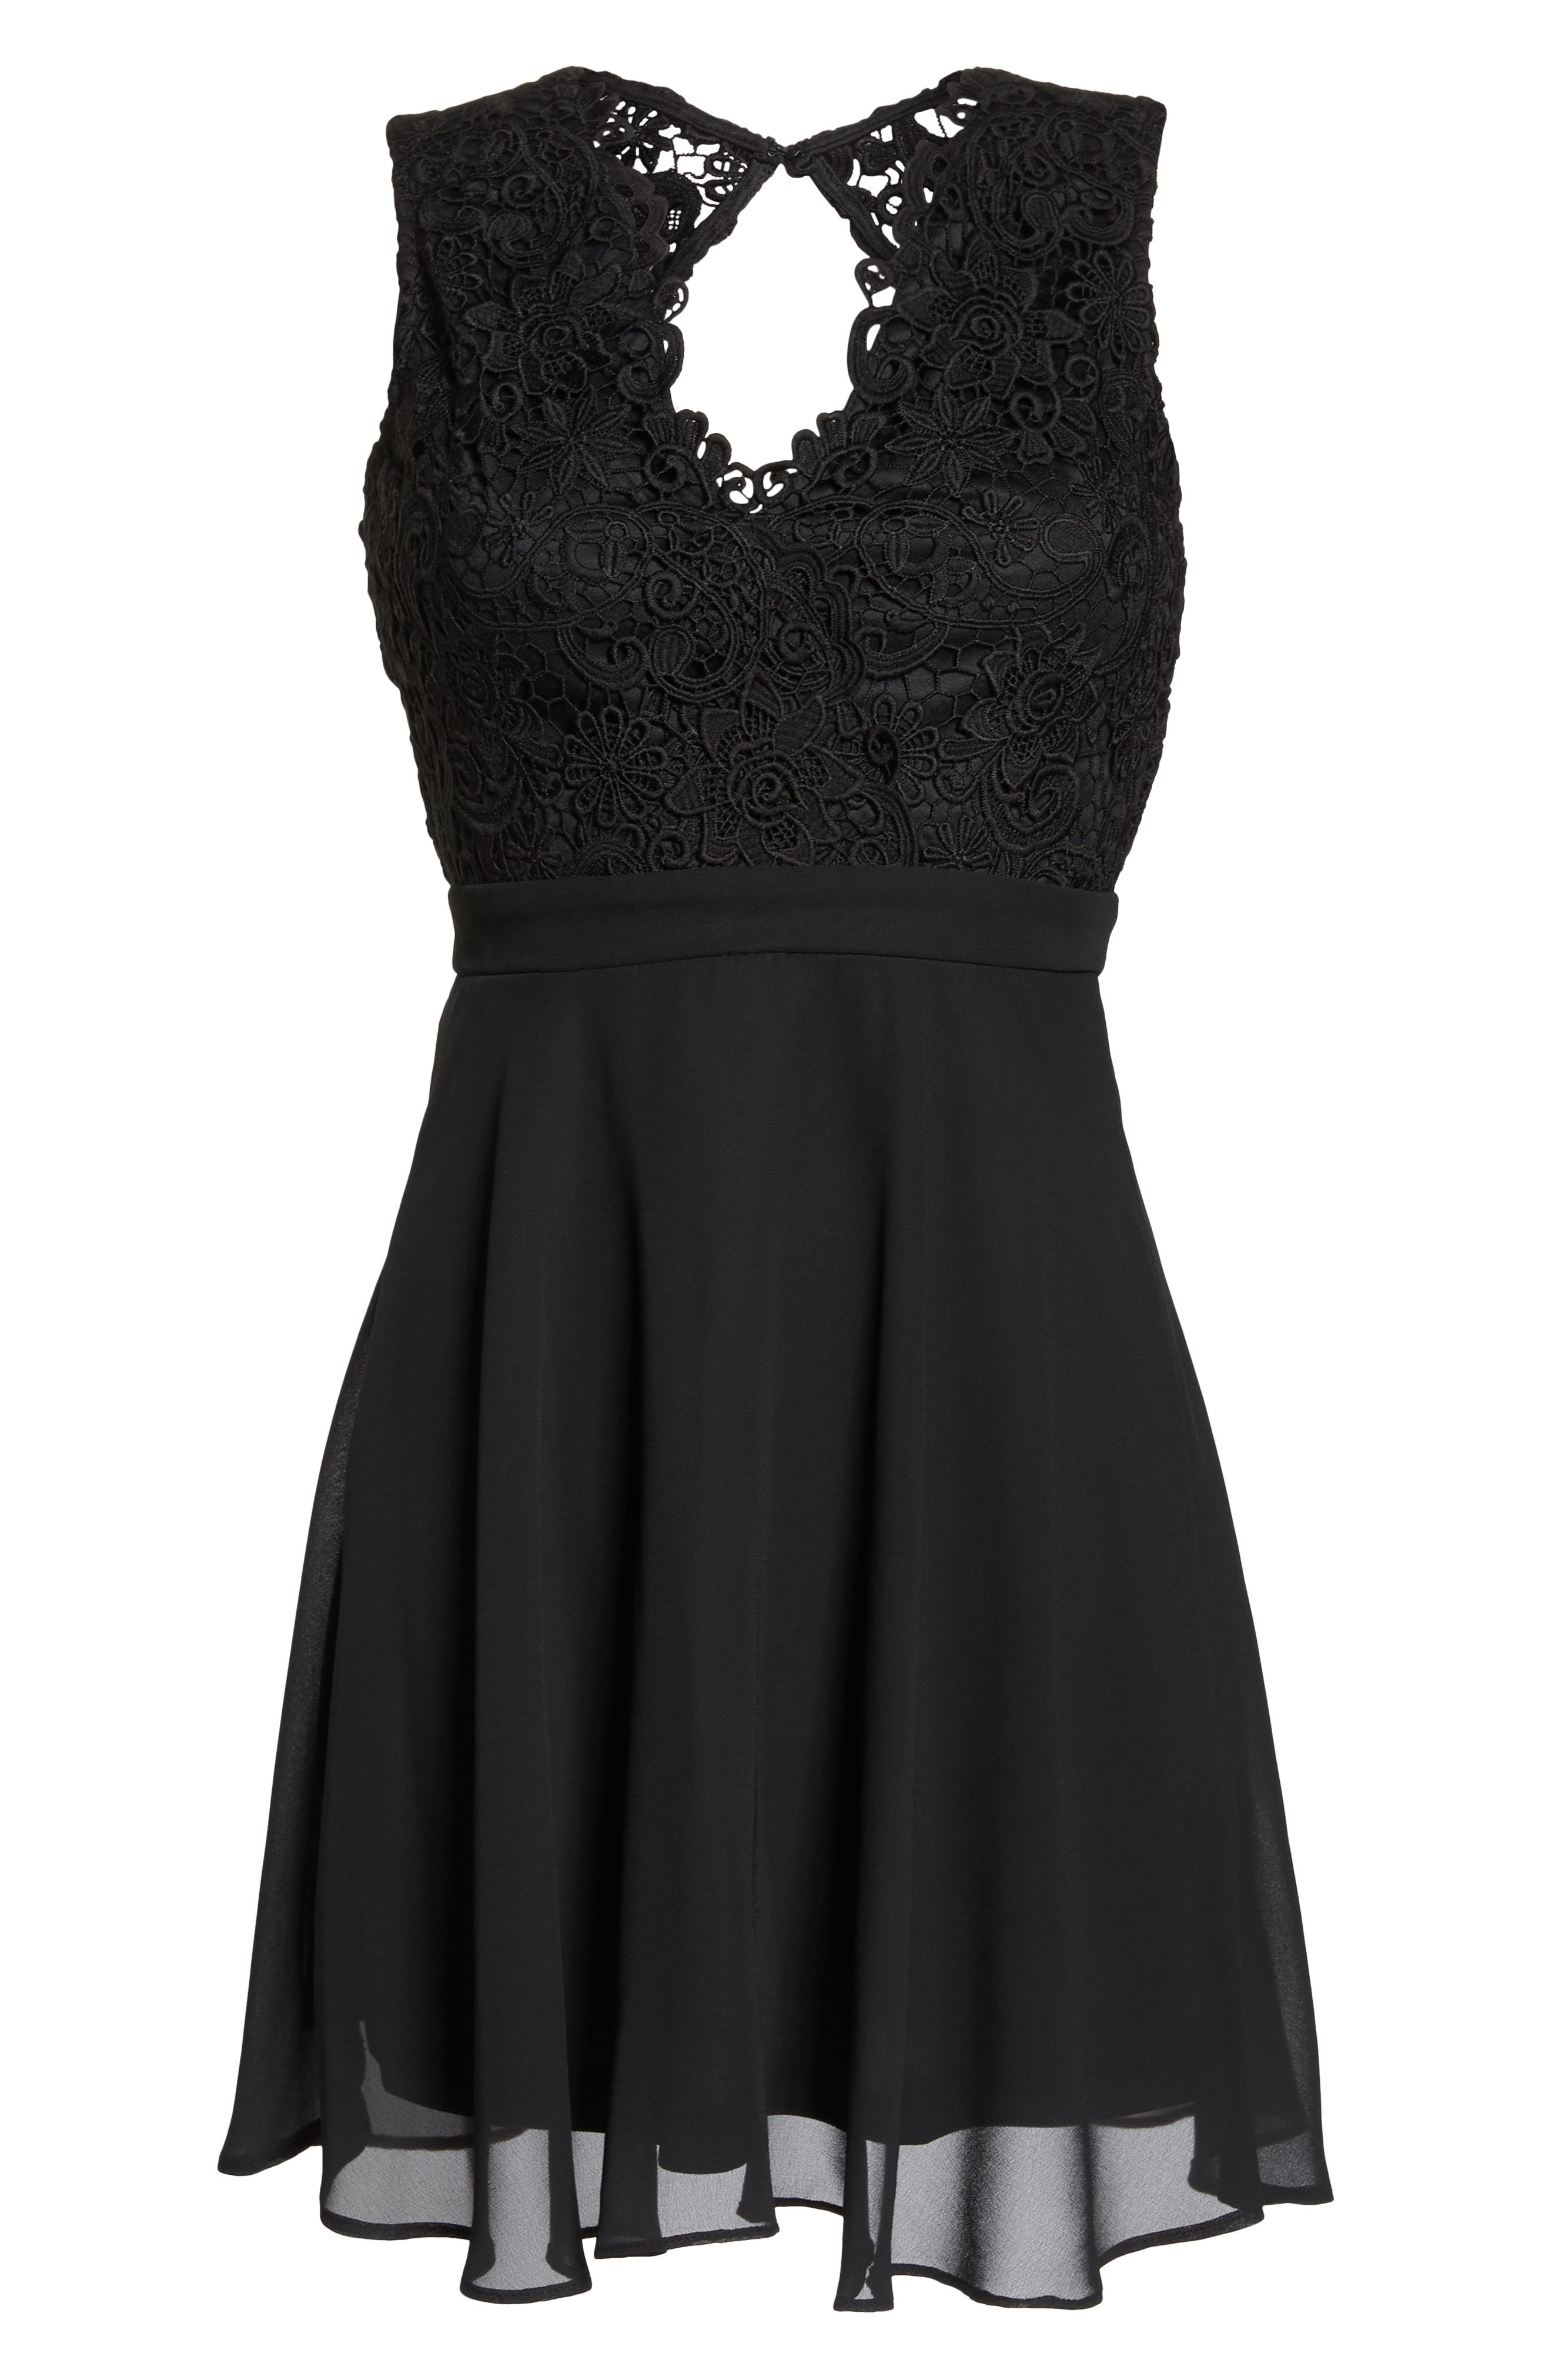 Lace & Chiffon Skater Dress,                             Alternate thumbnail 7, color,                             BLACK